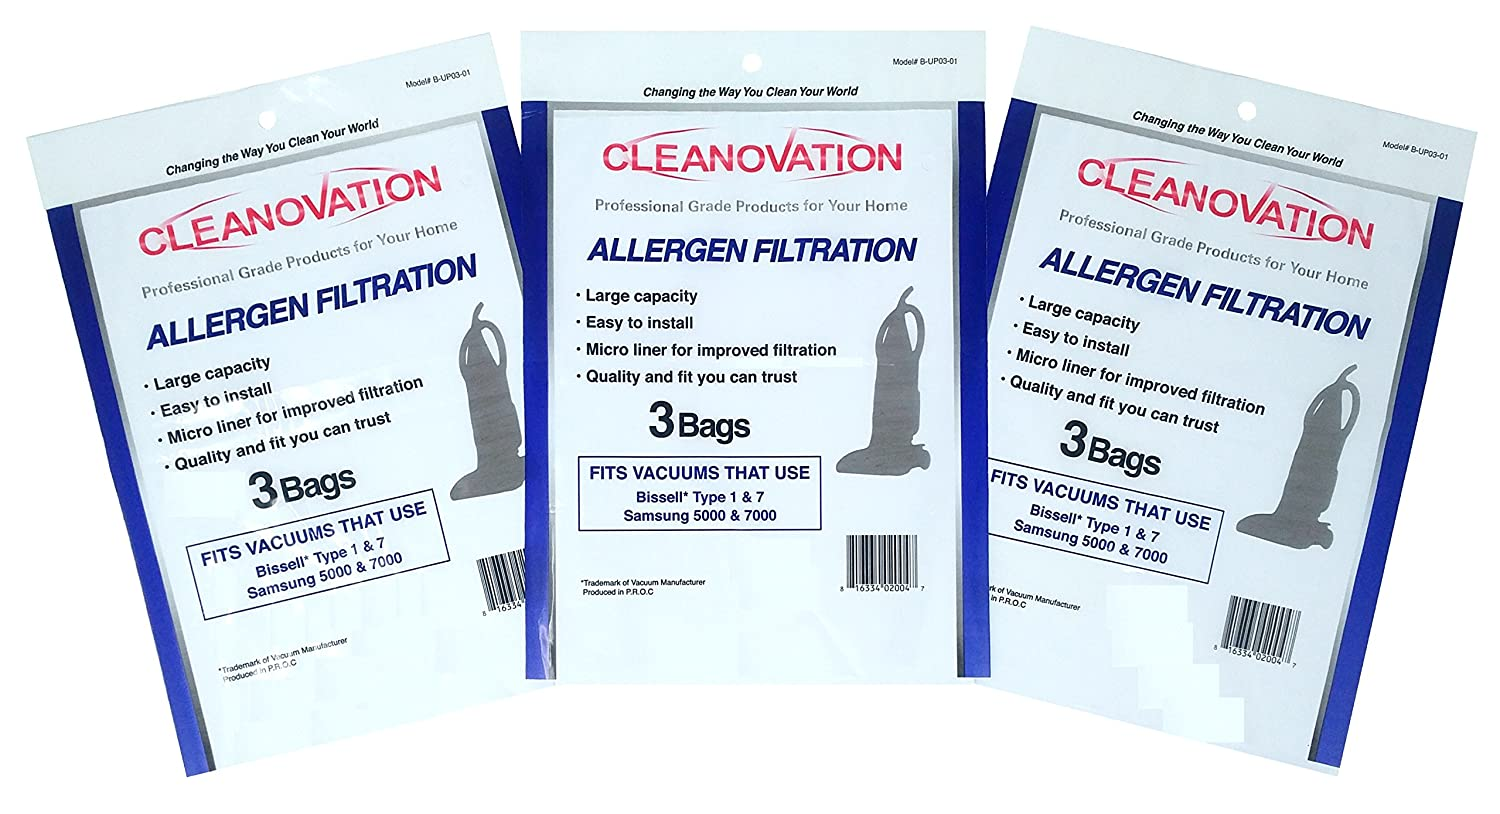 CLEANOVATION - BISSELL Upright Style 1 & 7 + Samsung 5000 + 7000 Upright Vacuum Cleaner Bags (9 Micro Lined Allergen Bags per Package) B-UP03-01-3